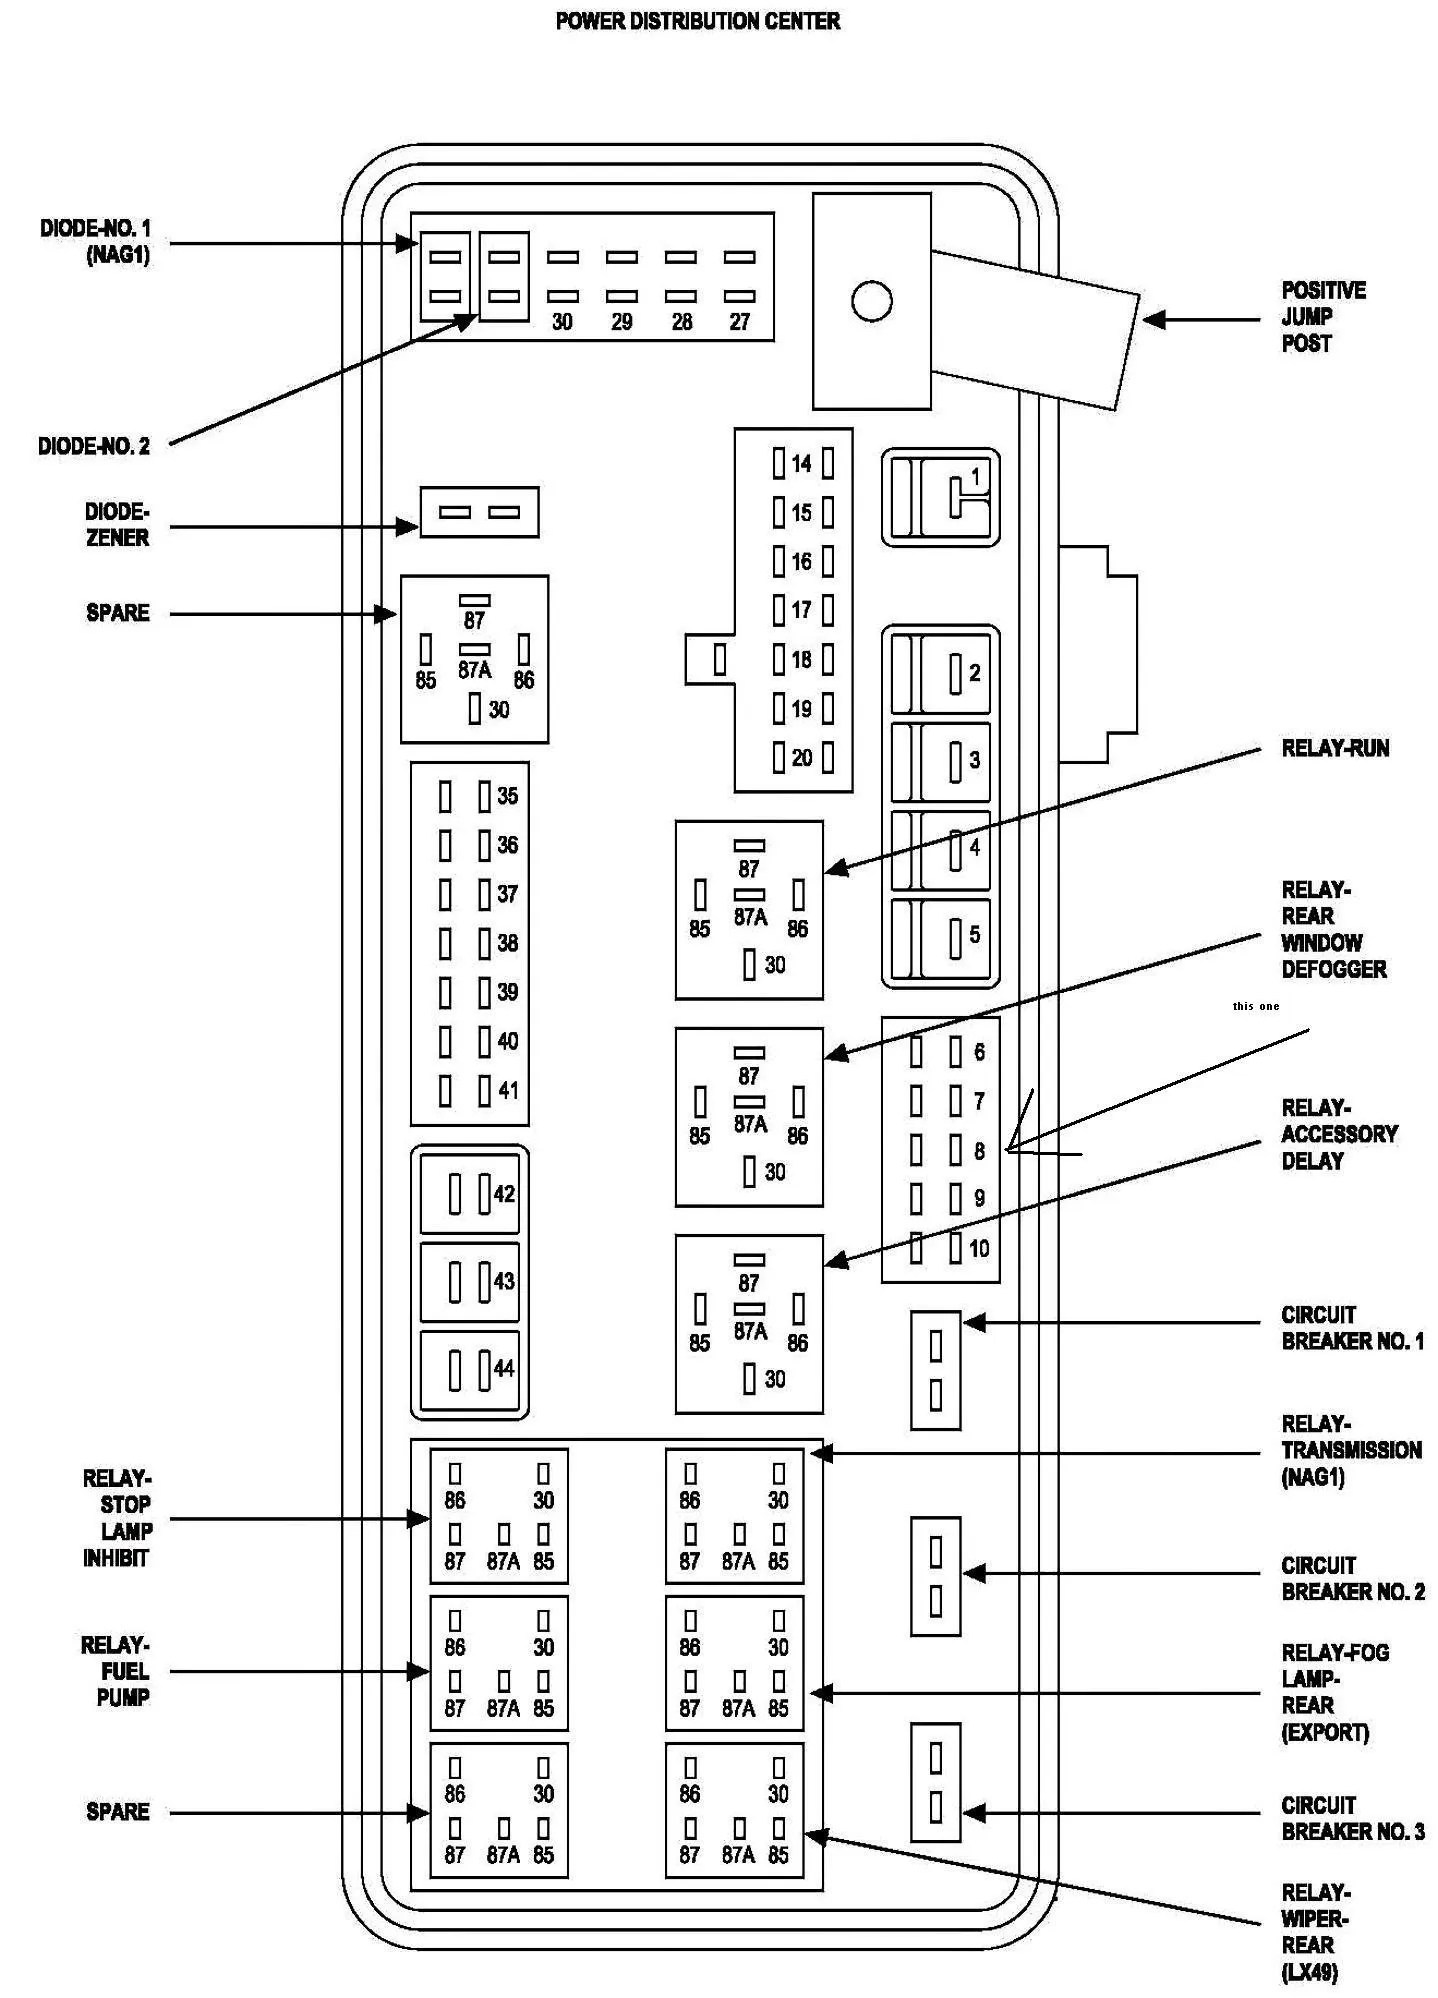 hight resolution of 2010 challenger fuse diagram wiring diagram origin 2011 dodge challenger fuse box diagram dodge challenger fuse box